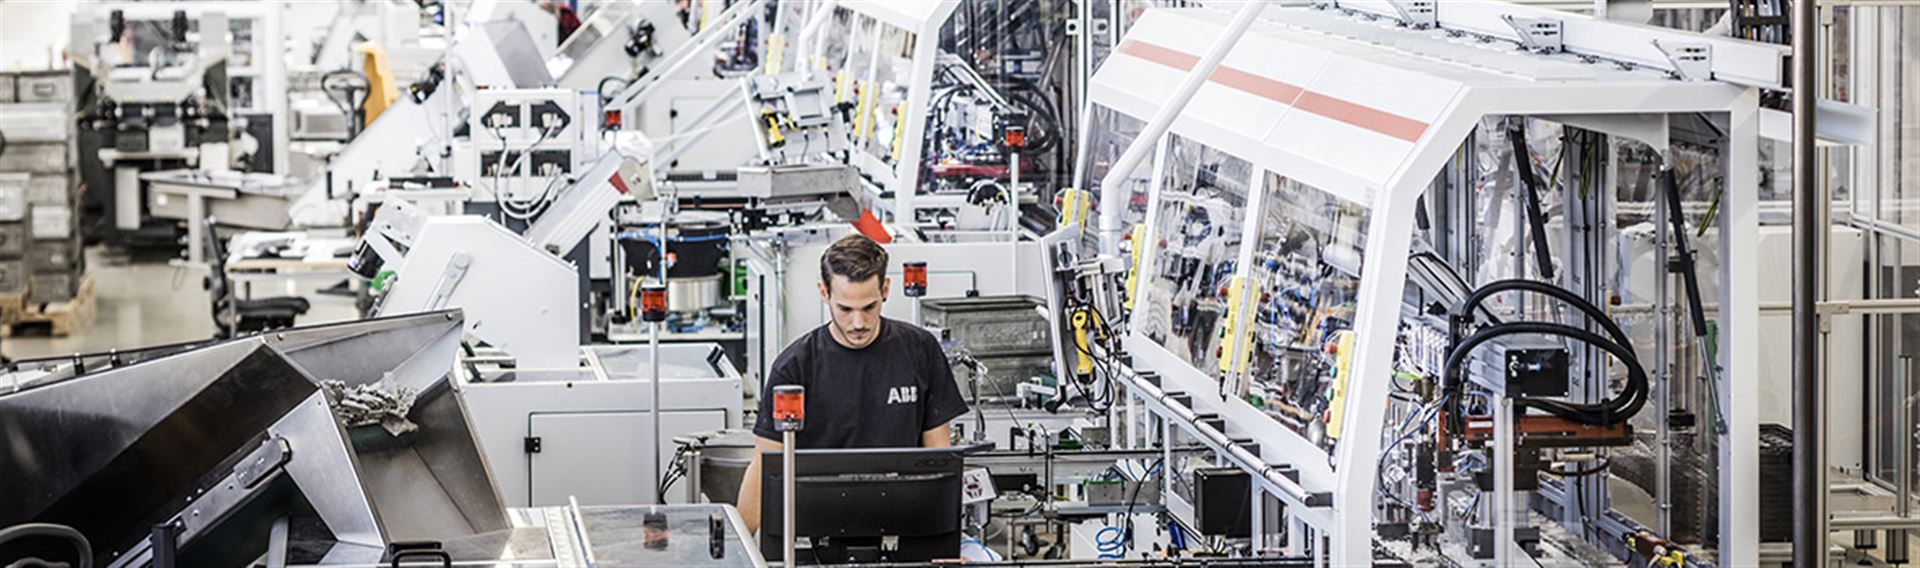 ABB - Your partner in mechanical engineering